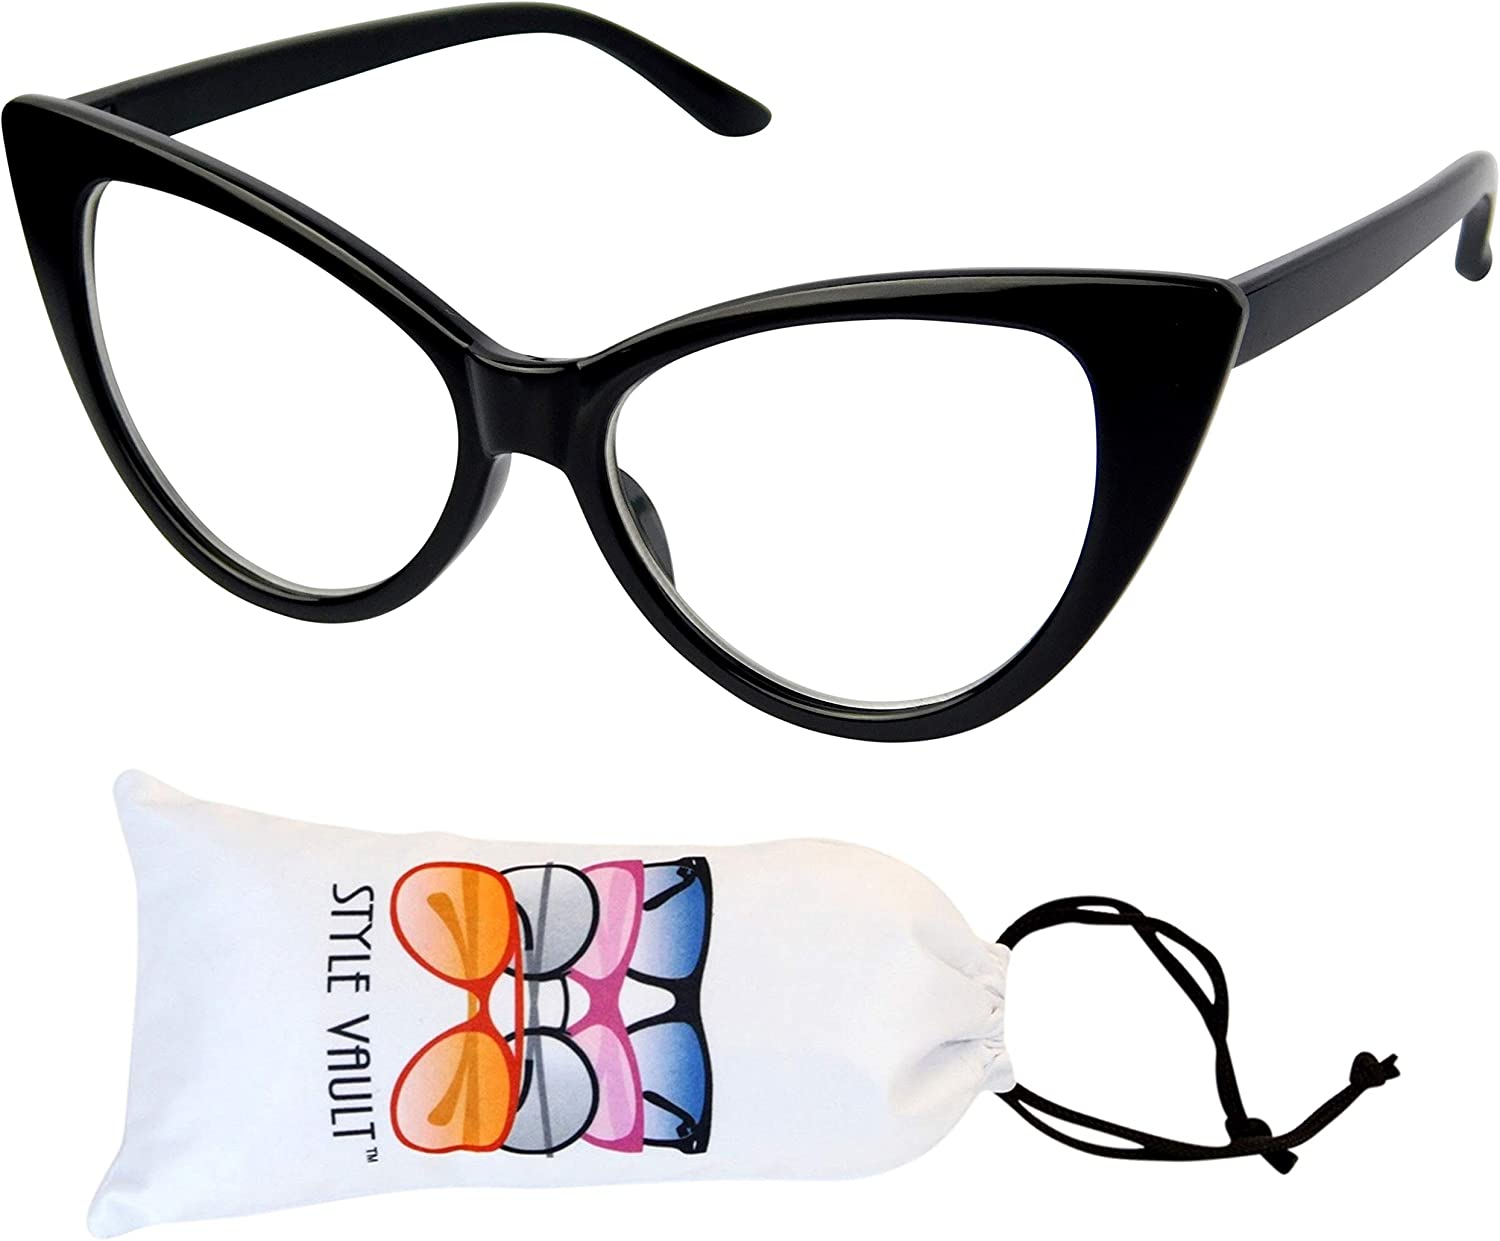 KD3137 Cateye Baby infant toddlers Age 0-24 months Costume Glasses Sunglasses